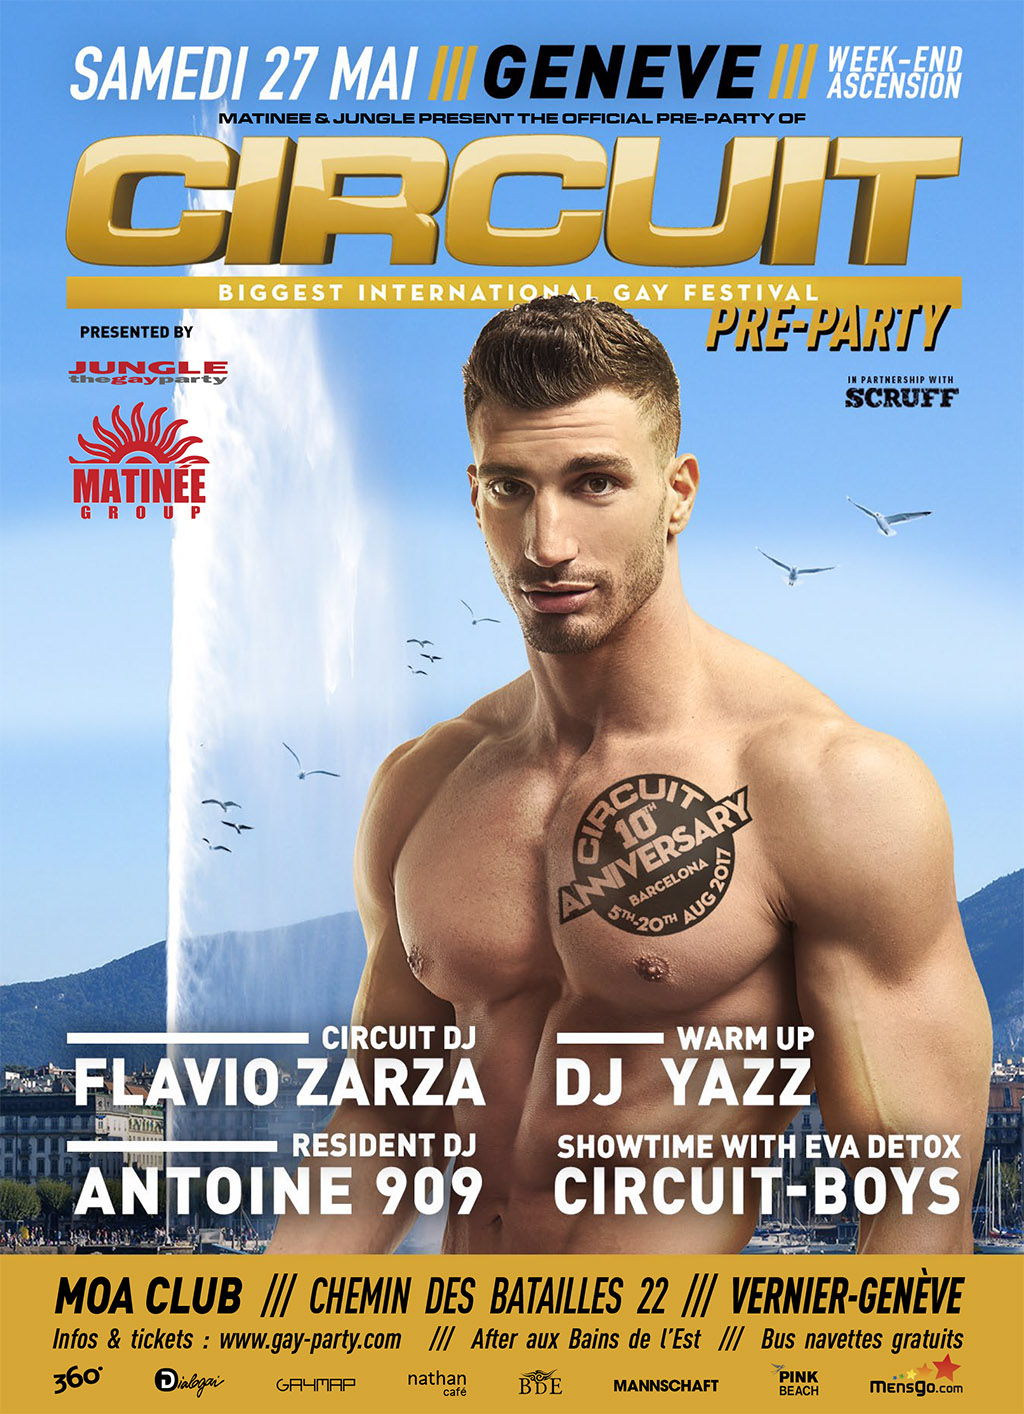 circuit-party-ginebra-geneve-gay-party